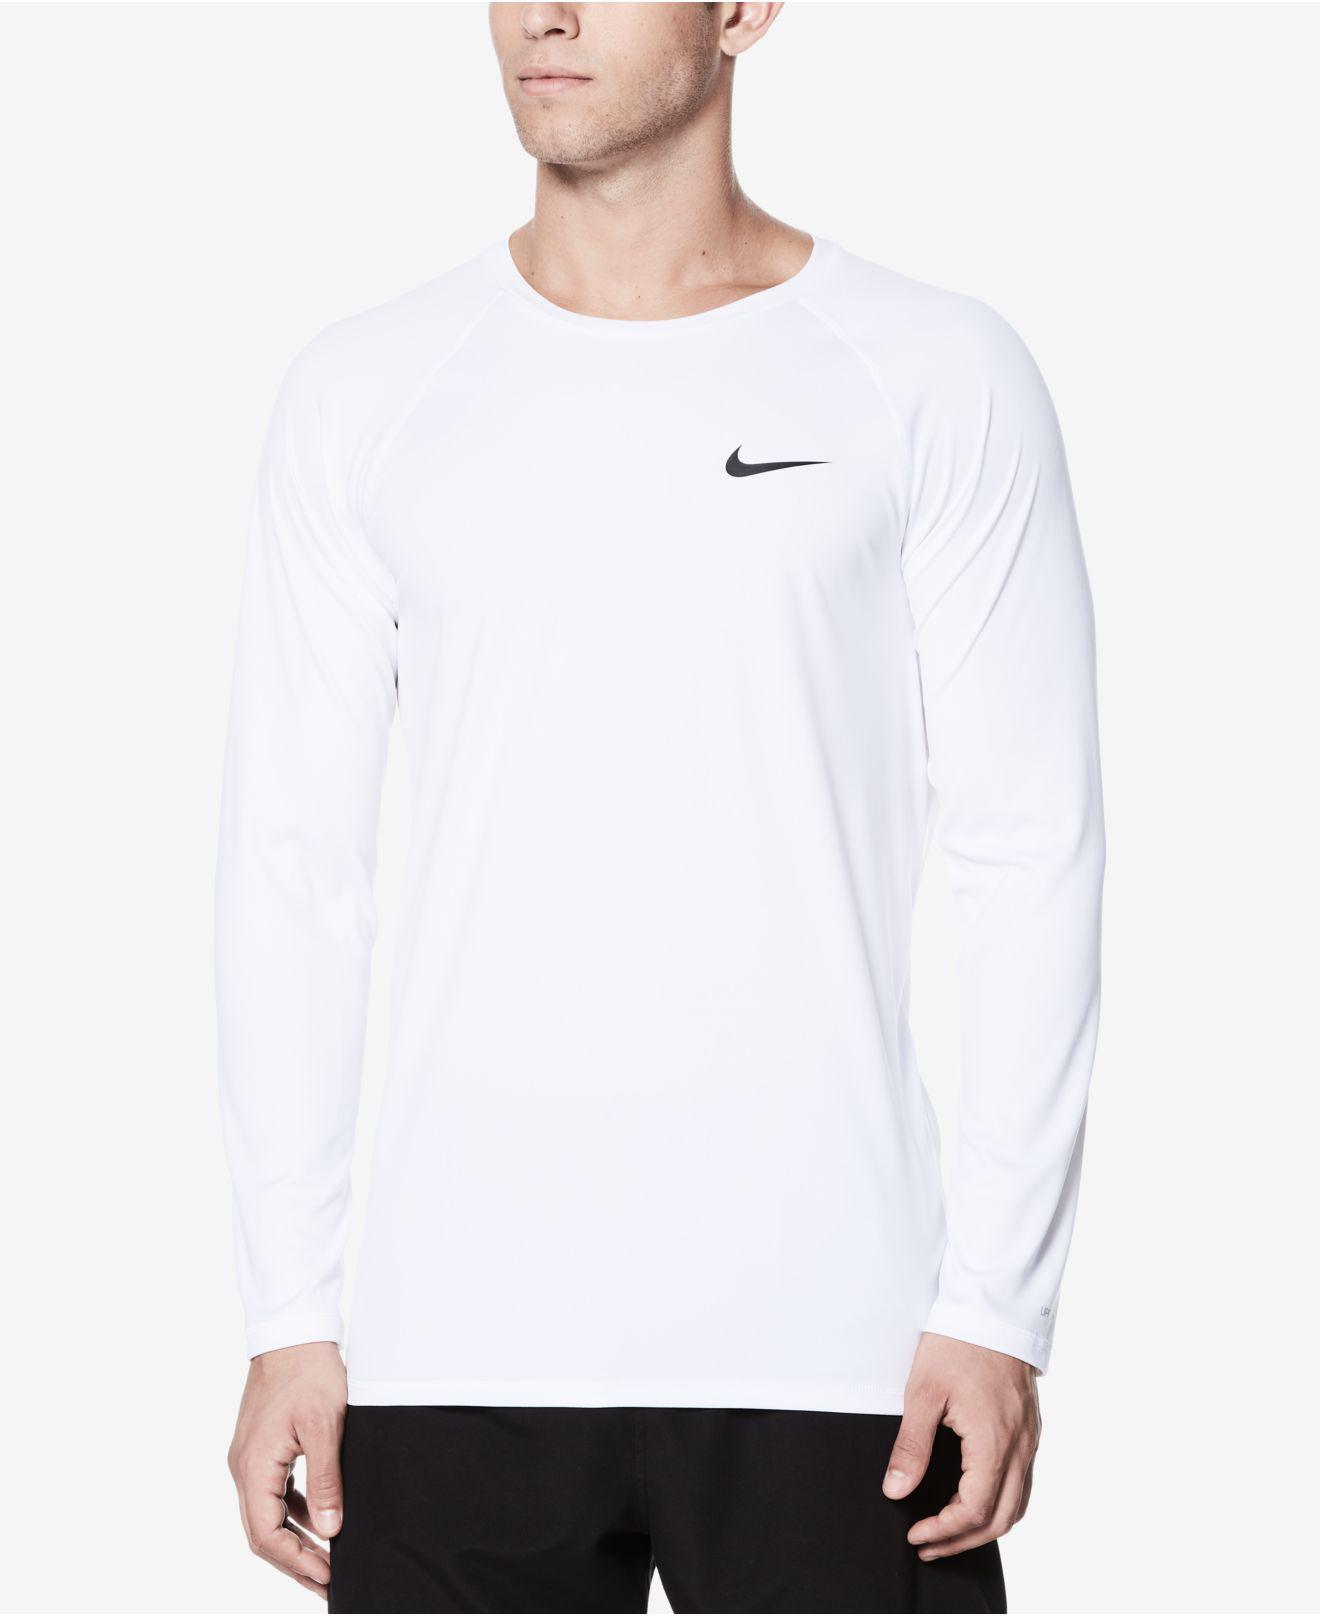 926a6abe Nike Long-sleeve Hydroguard T-shirt in White for Men - Lyst